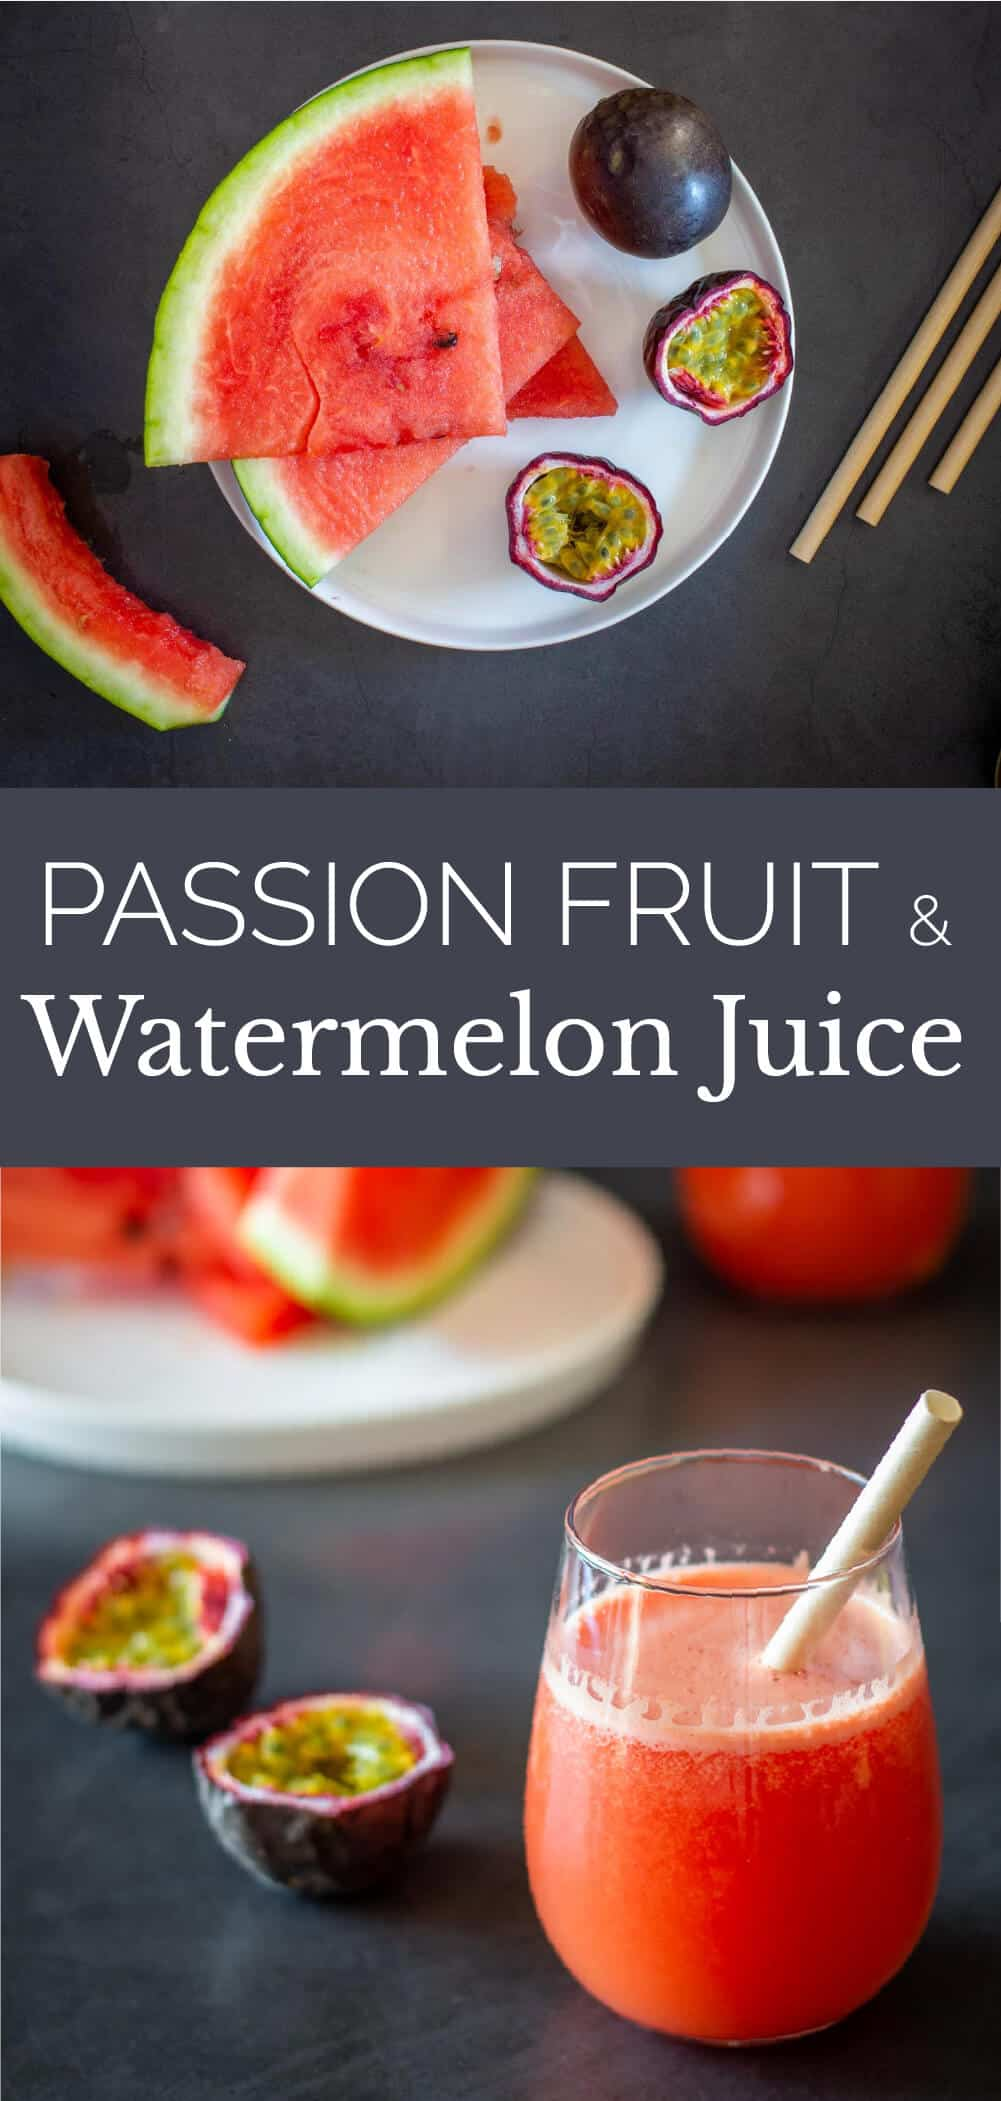 Passion Fruit and Watermelon Juice glass